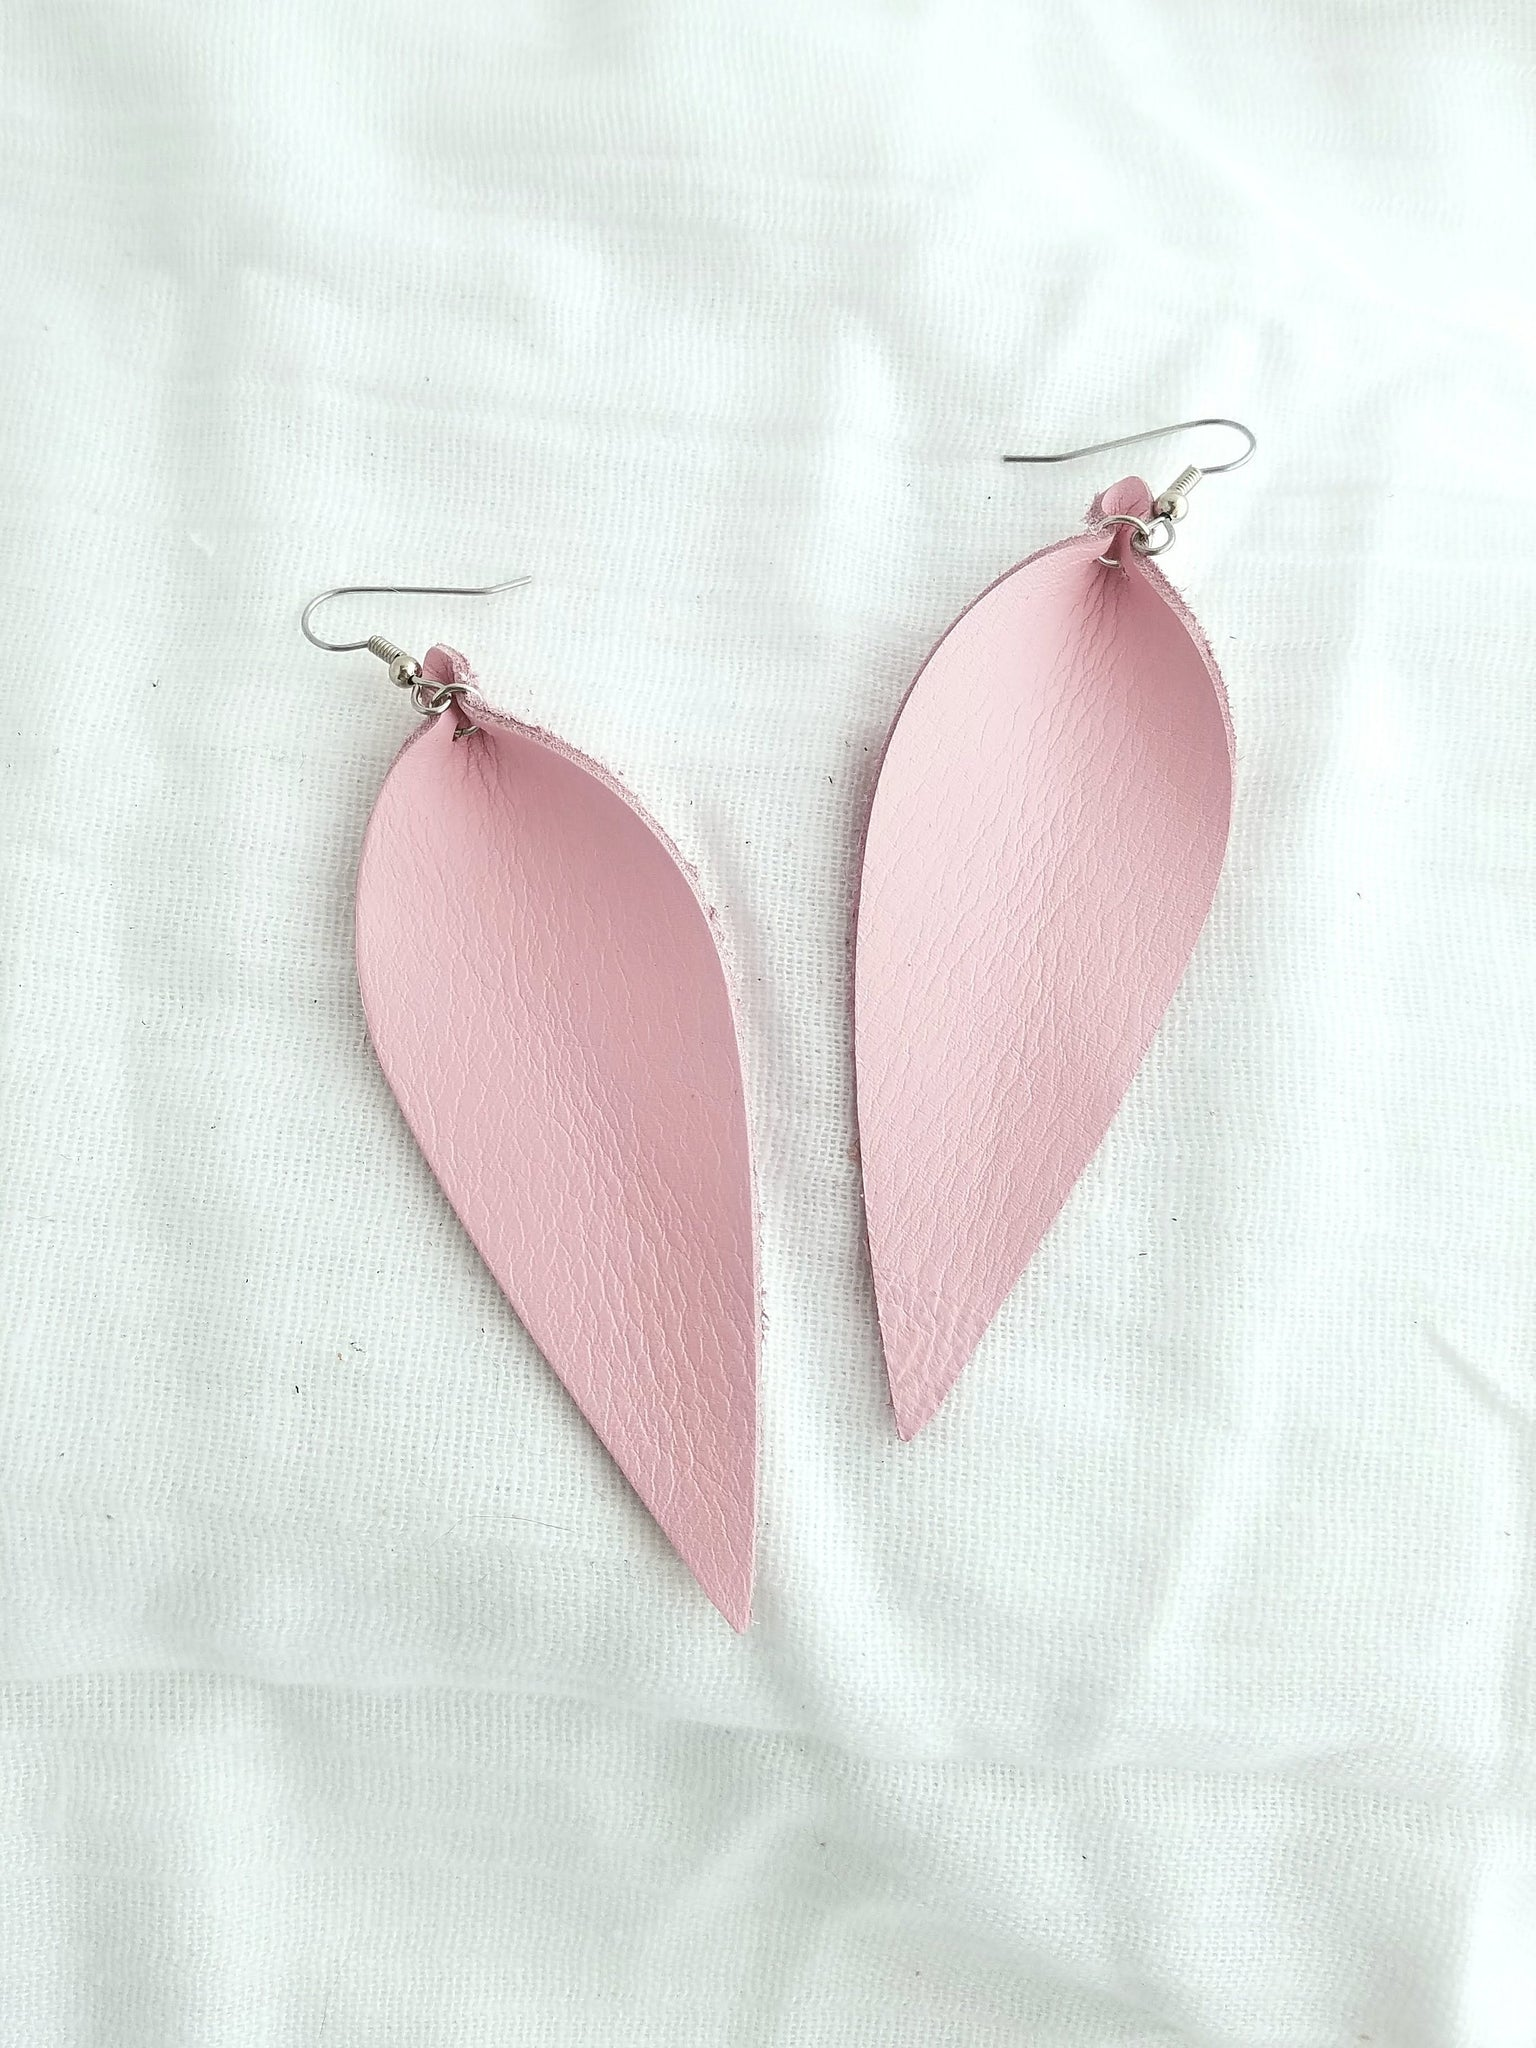 "Petal Pink / Leather Leaf Earrings / Large / 3.5 x 1.25"" / Hypoallergenic / FREE SHIPPING"